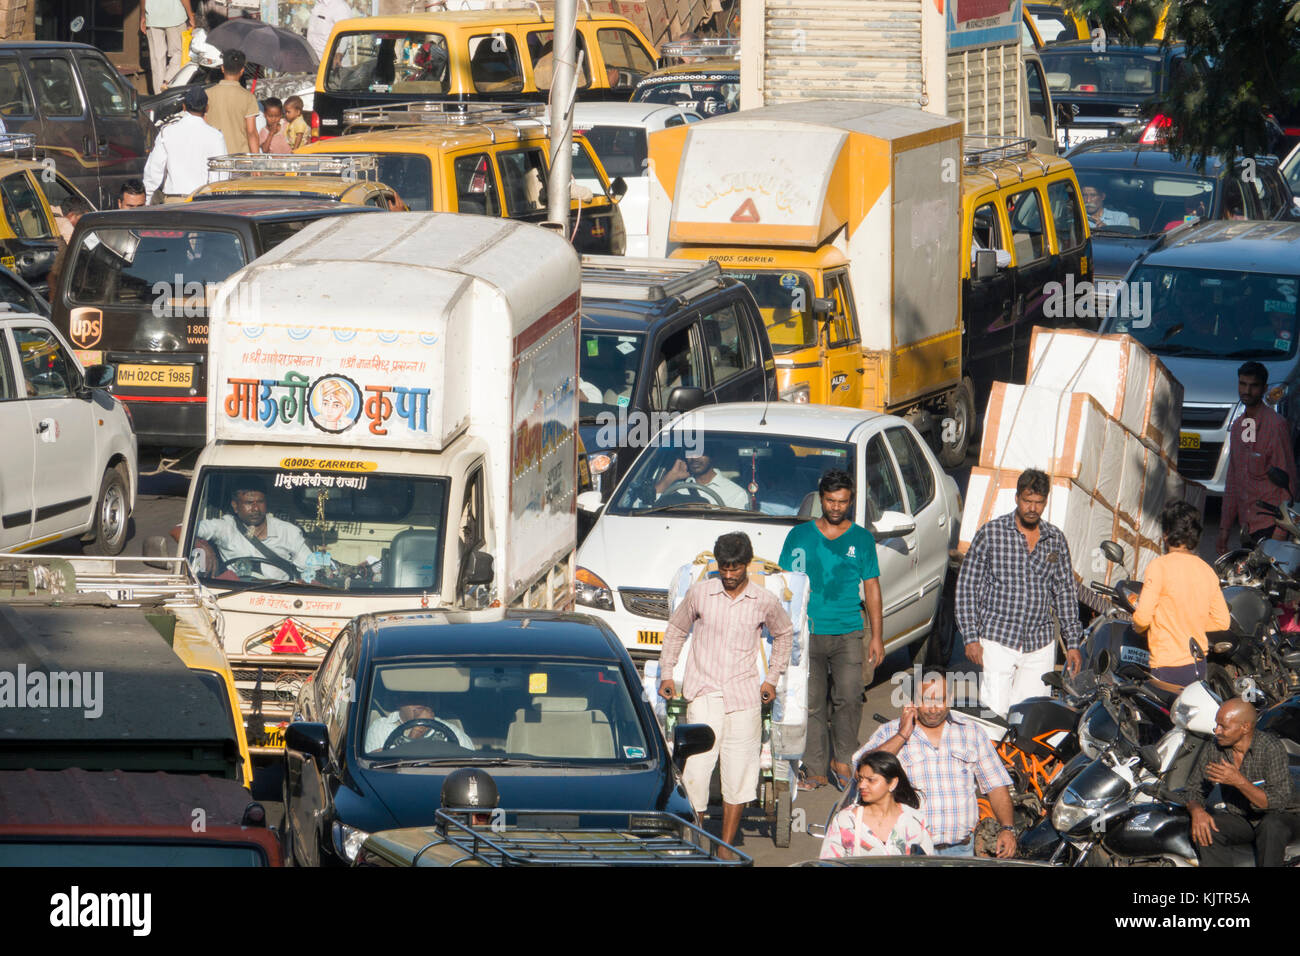 traffic jam in india Thousands of exasperated indian motorists found themselves stranded in a 26- lane traffic jam outside the capital new delhi this week.